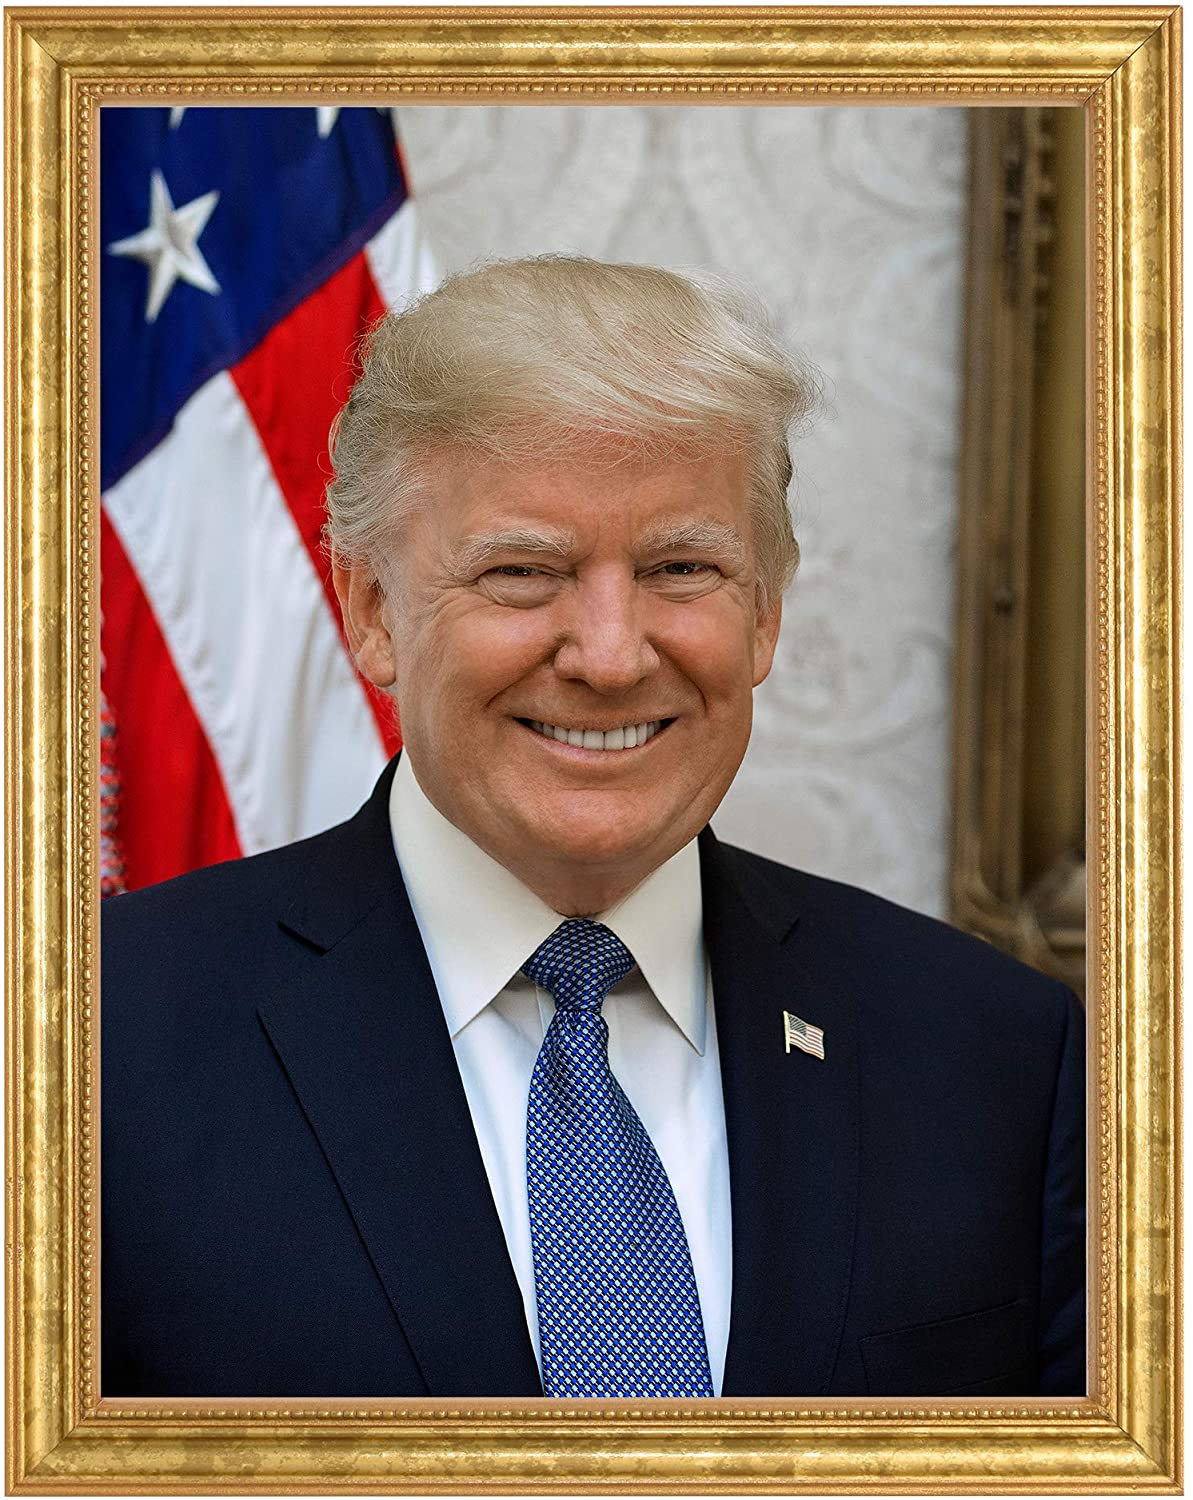 Donald J. Trump Photograph in a Aged Gold Frame - Historical Artwork from 2017 - (11